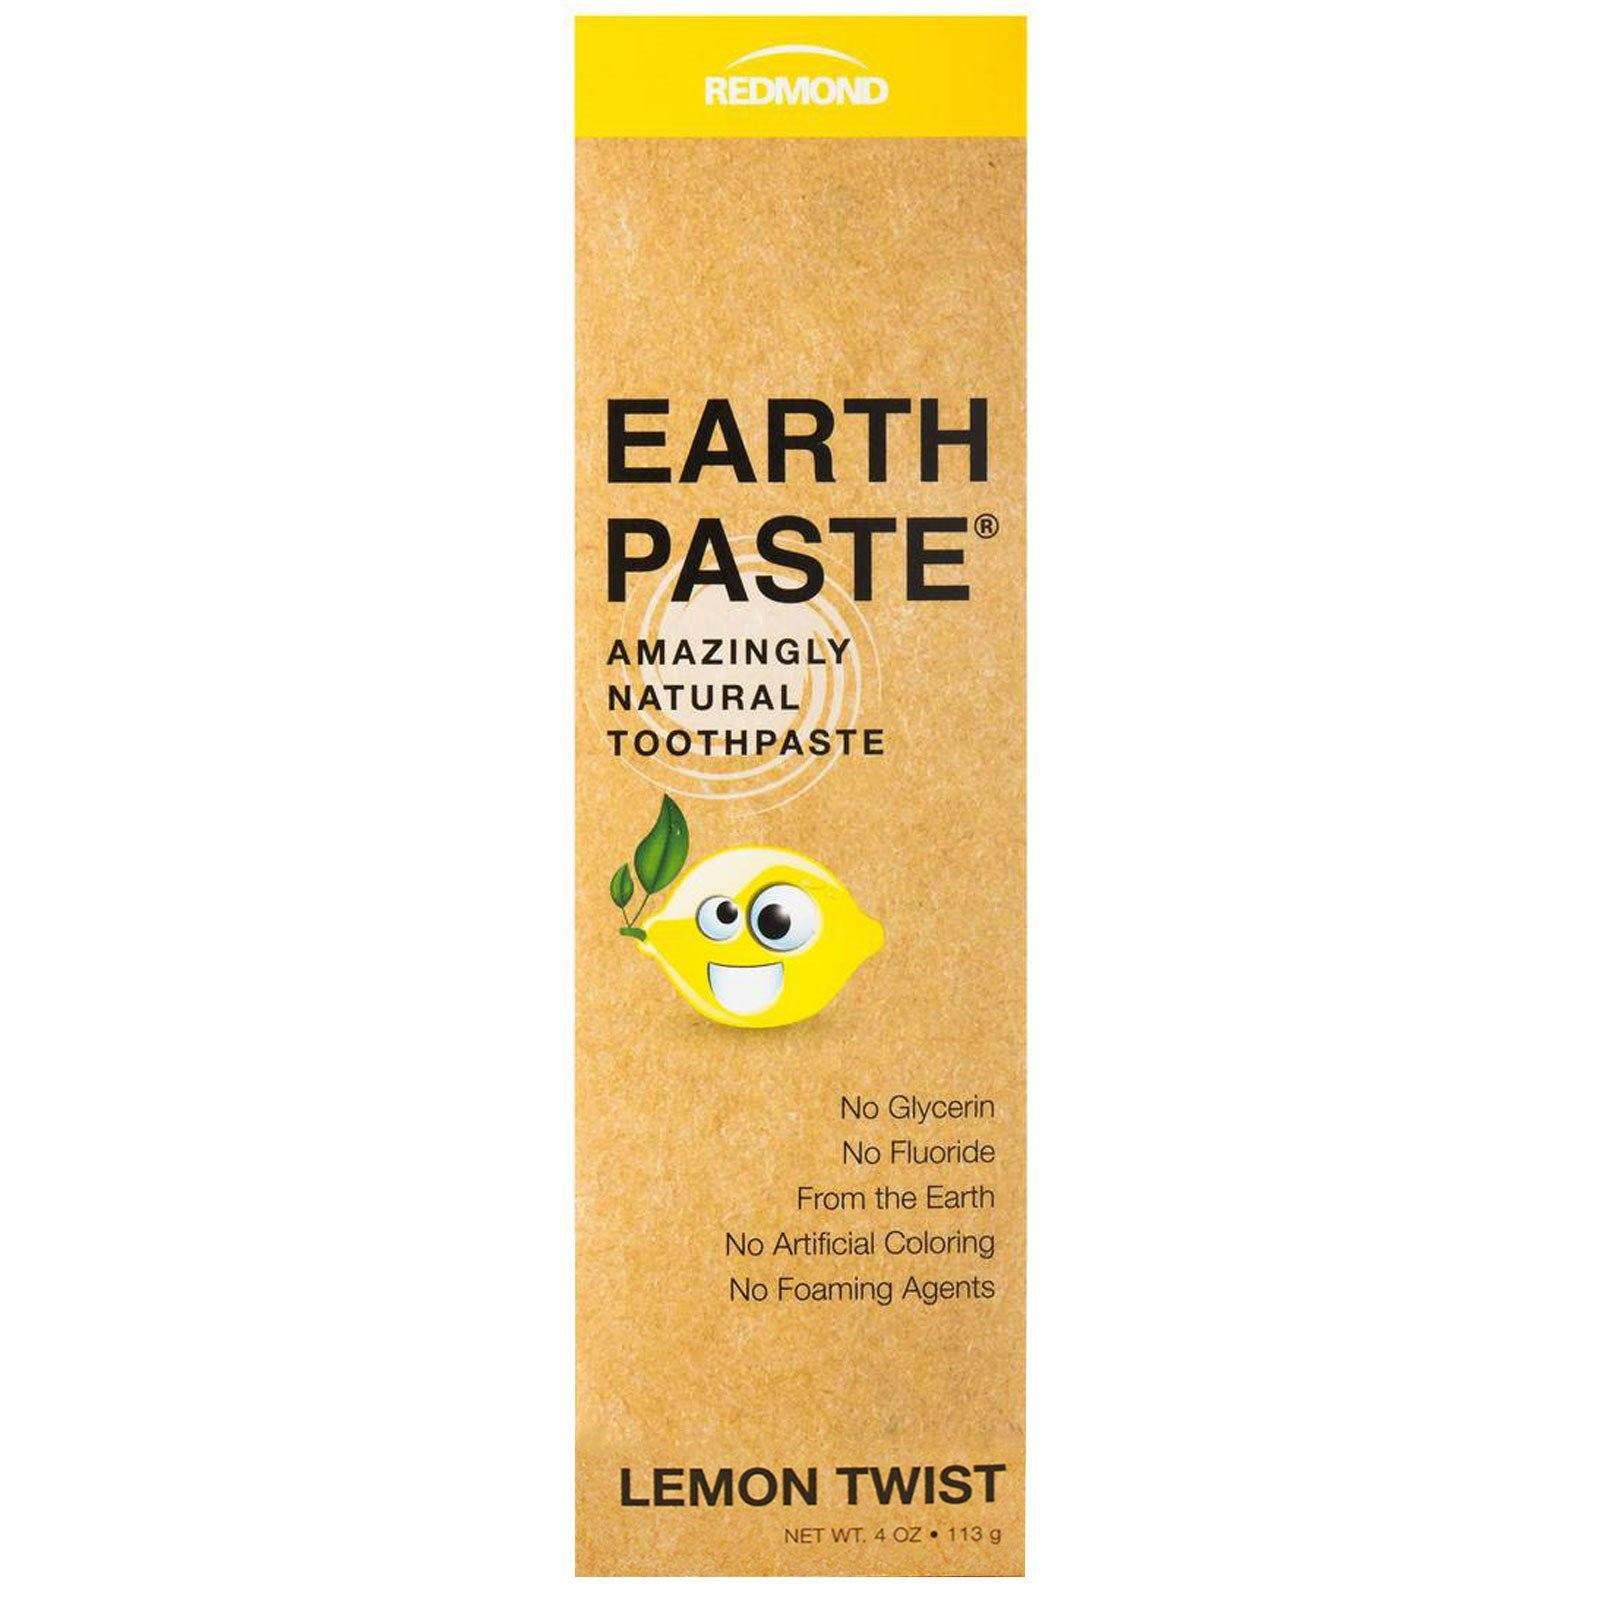 Personal Care - Redmond Trading Co. Toothpaste Lemon Twist - 113g